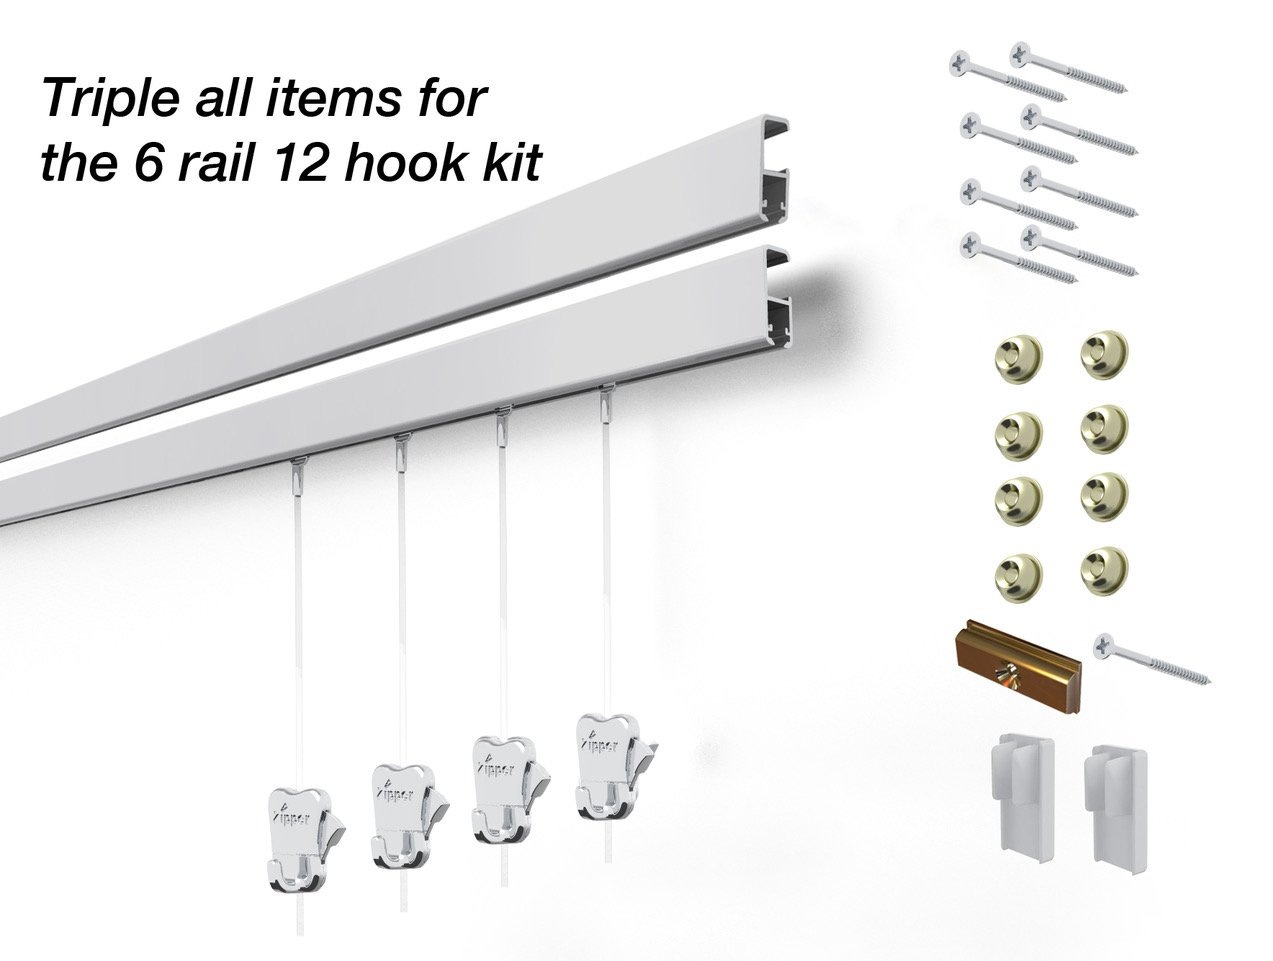 12 Hanging Components STAS Cliprail Pro Picture Hanging System Kit- Heavy Duty Track and Art Hanging Gallery Kit for Home, Office or Public Space (6 rails 12 hooks and cords, matte silver rails)